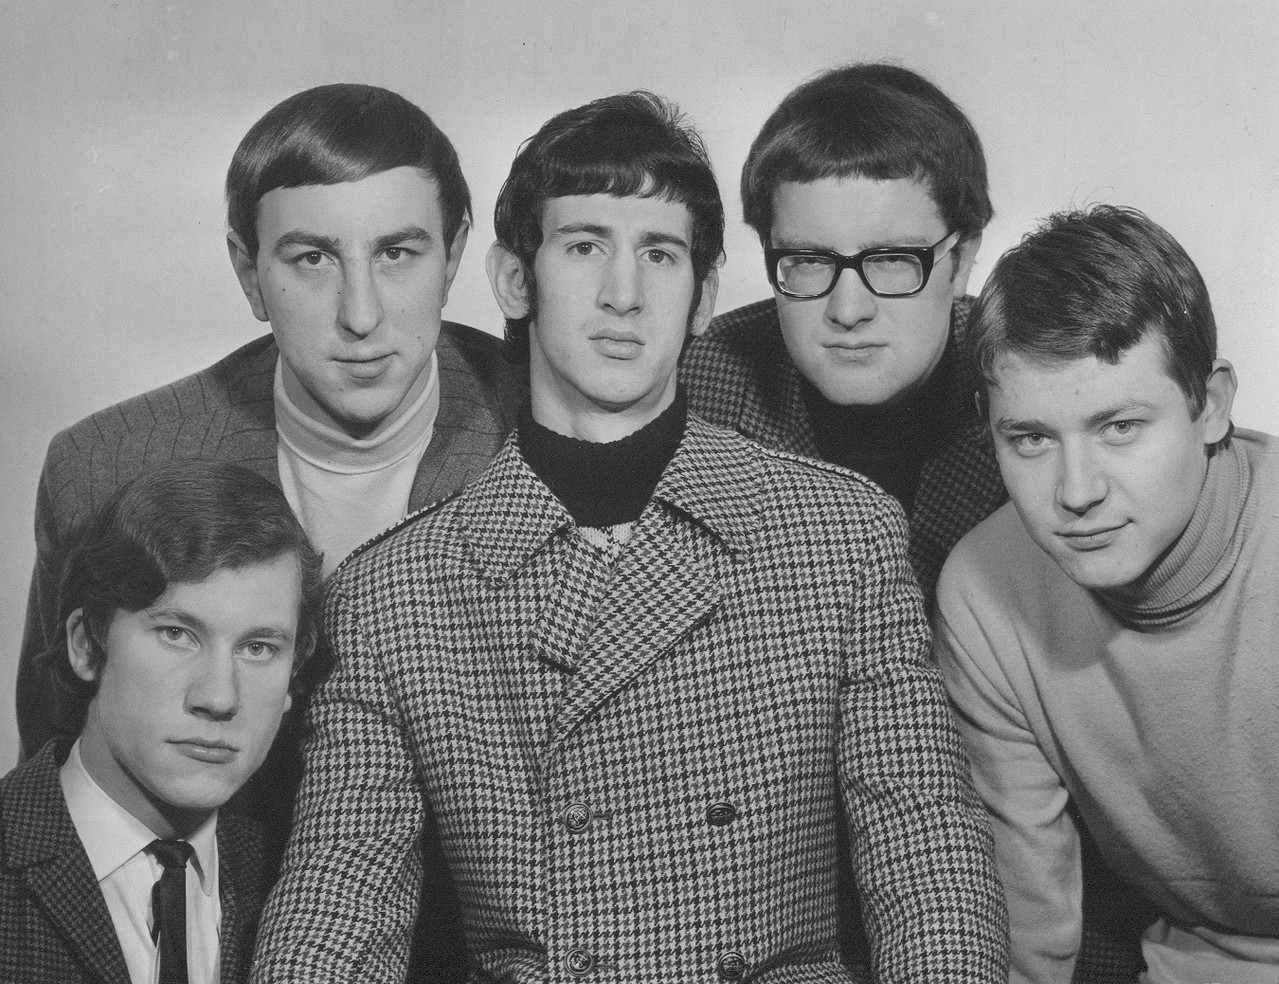 United Sounds Ltd. v.l. Rudi, Niko, Scott, Alfred, Harri 1966